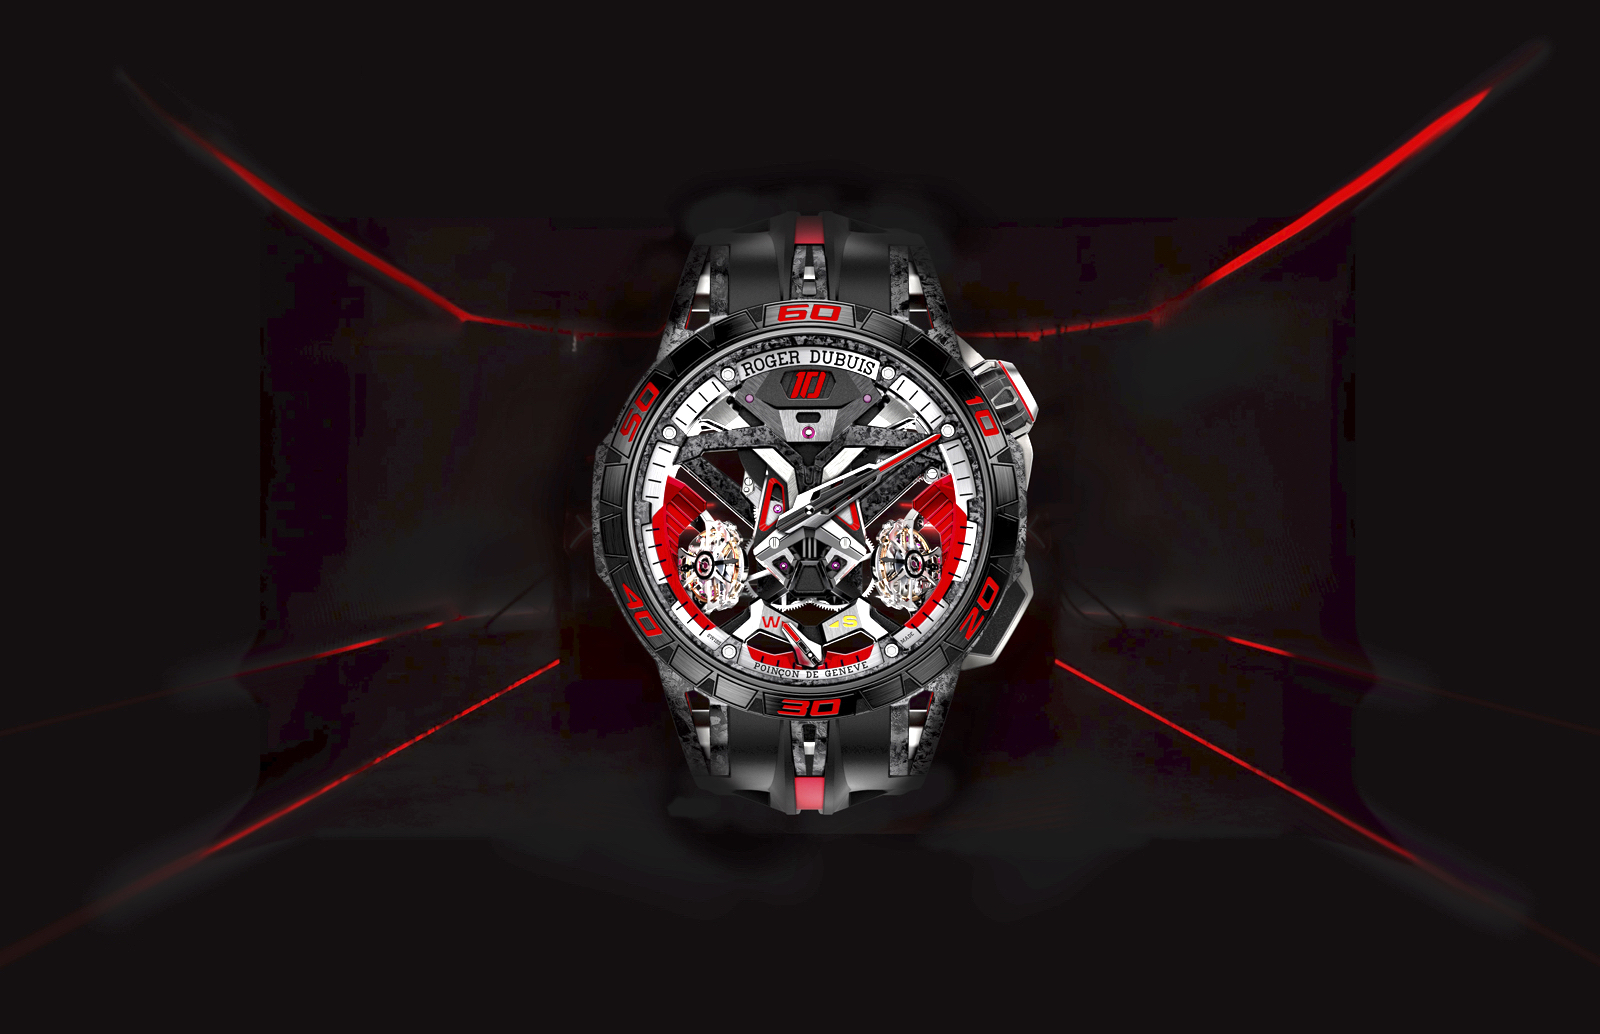 Roger-Dubuis-SIHH-2019-Excalibur-One-Off-1